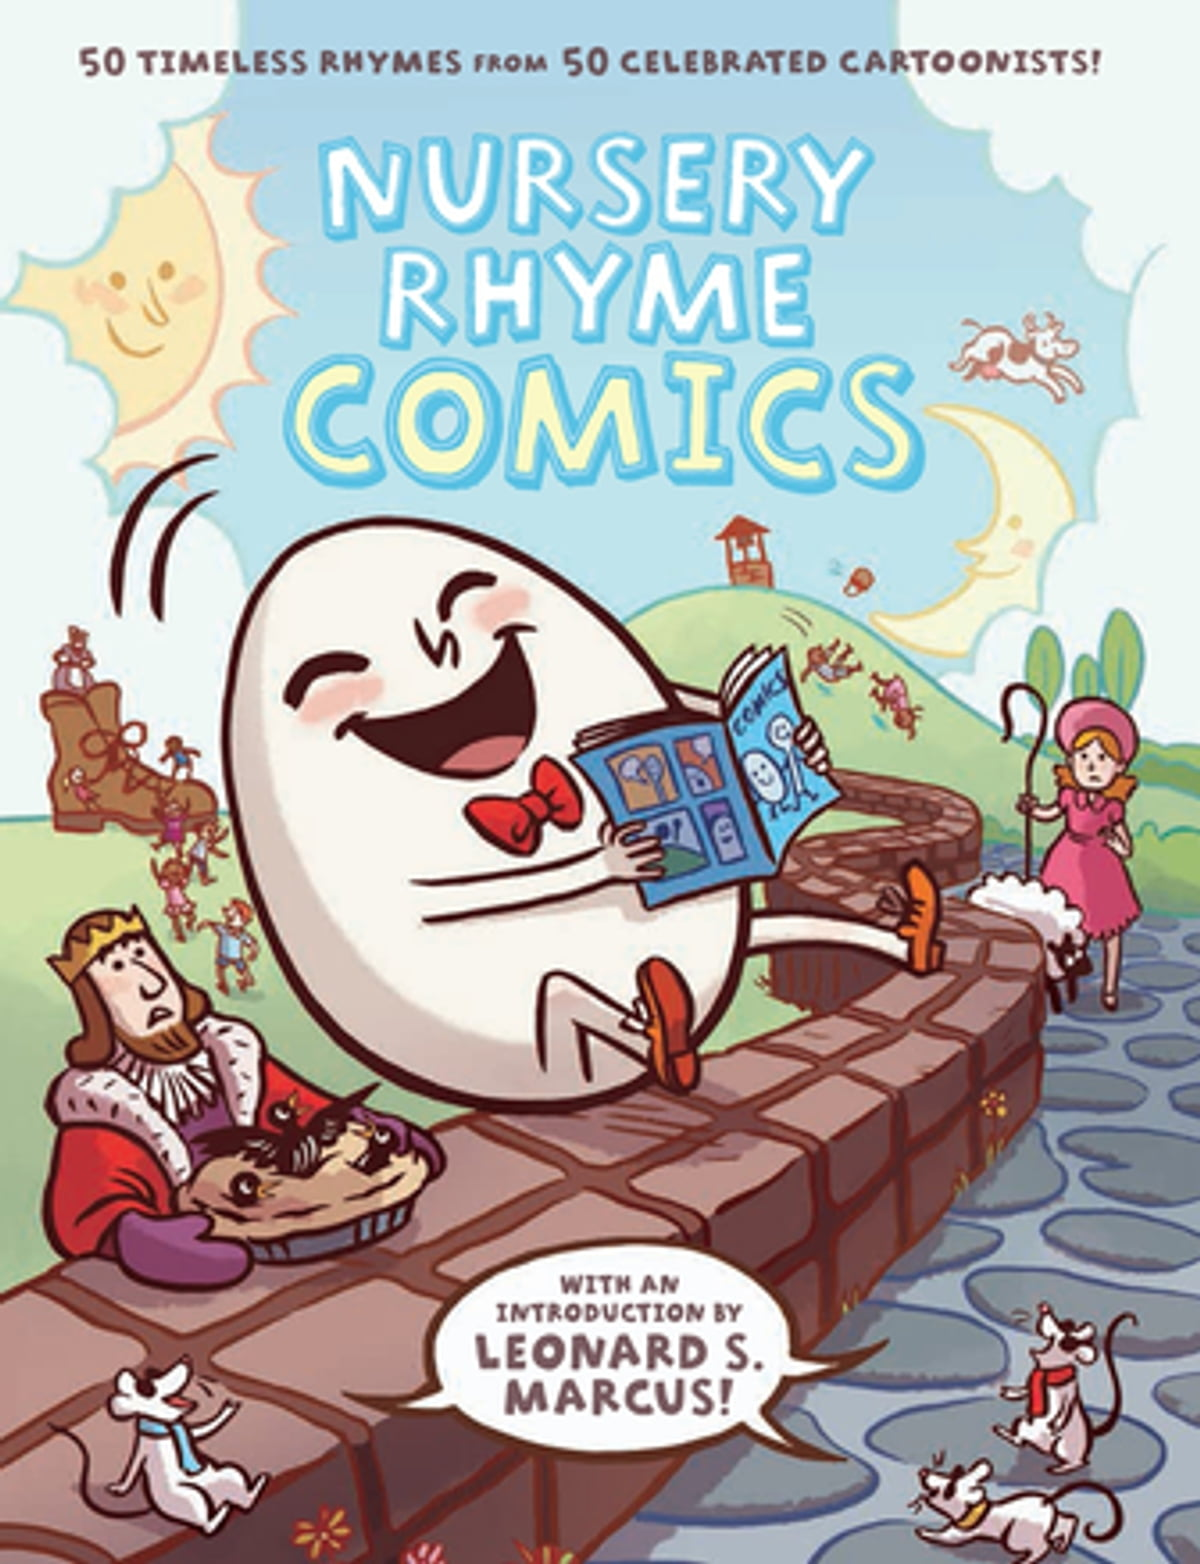 Nursery Rhyme Comics eBook by Various Authors - 9781466805606 | Rakuten Kobo